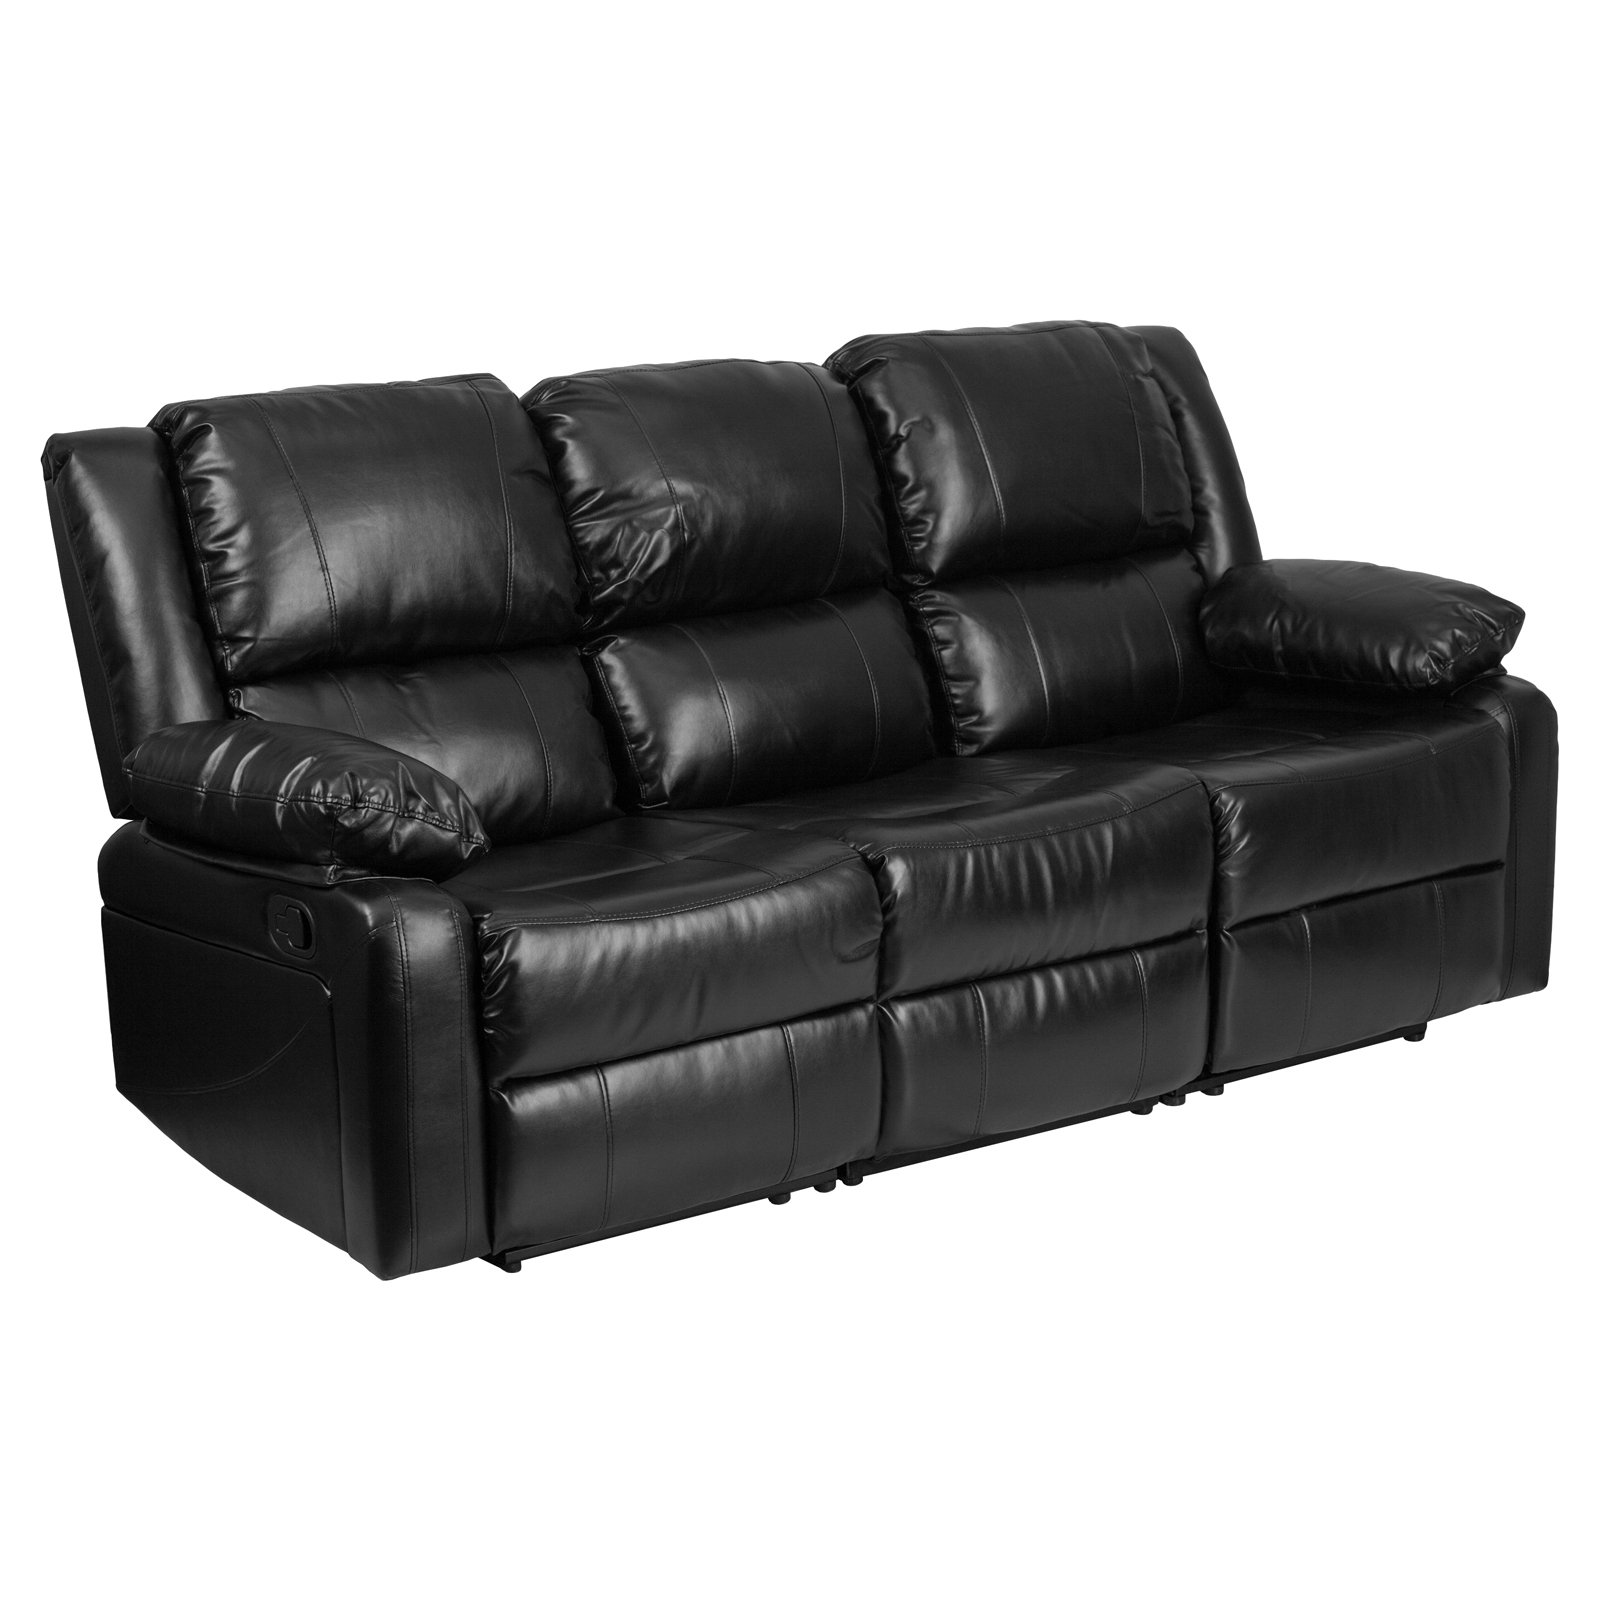 Attirant Flash Furniture Harmony Series Black Leather Sofa With Two Built In  Recliners